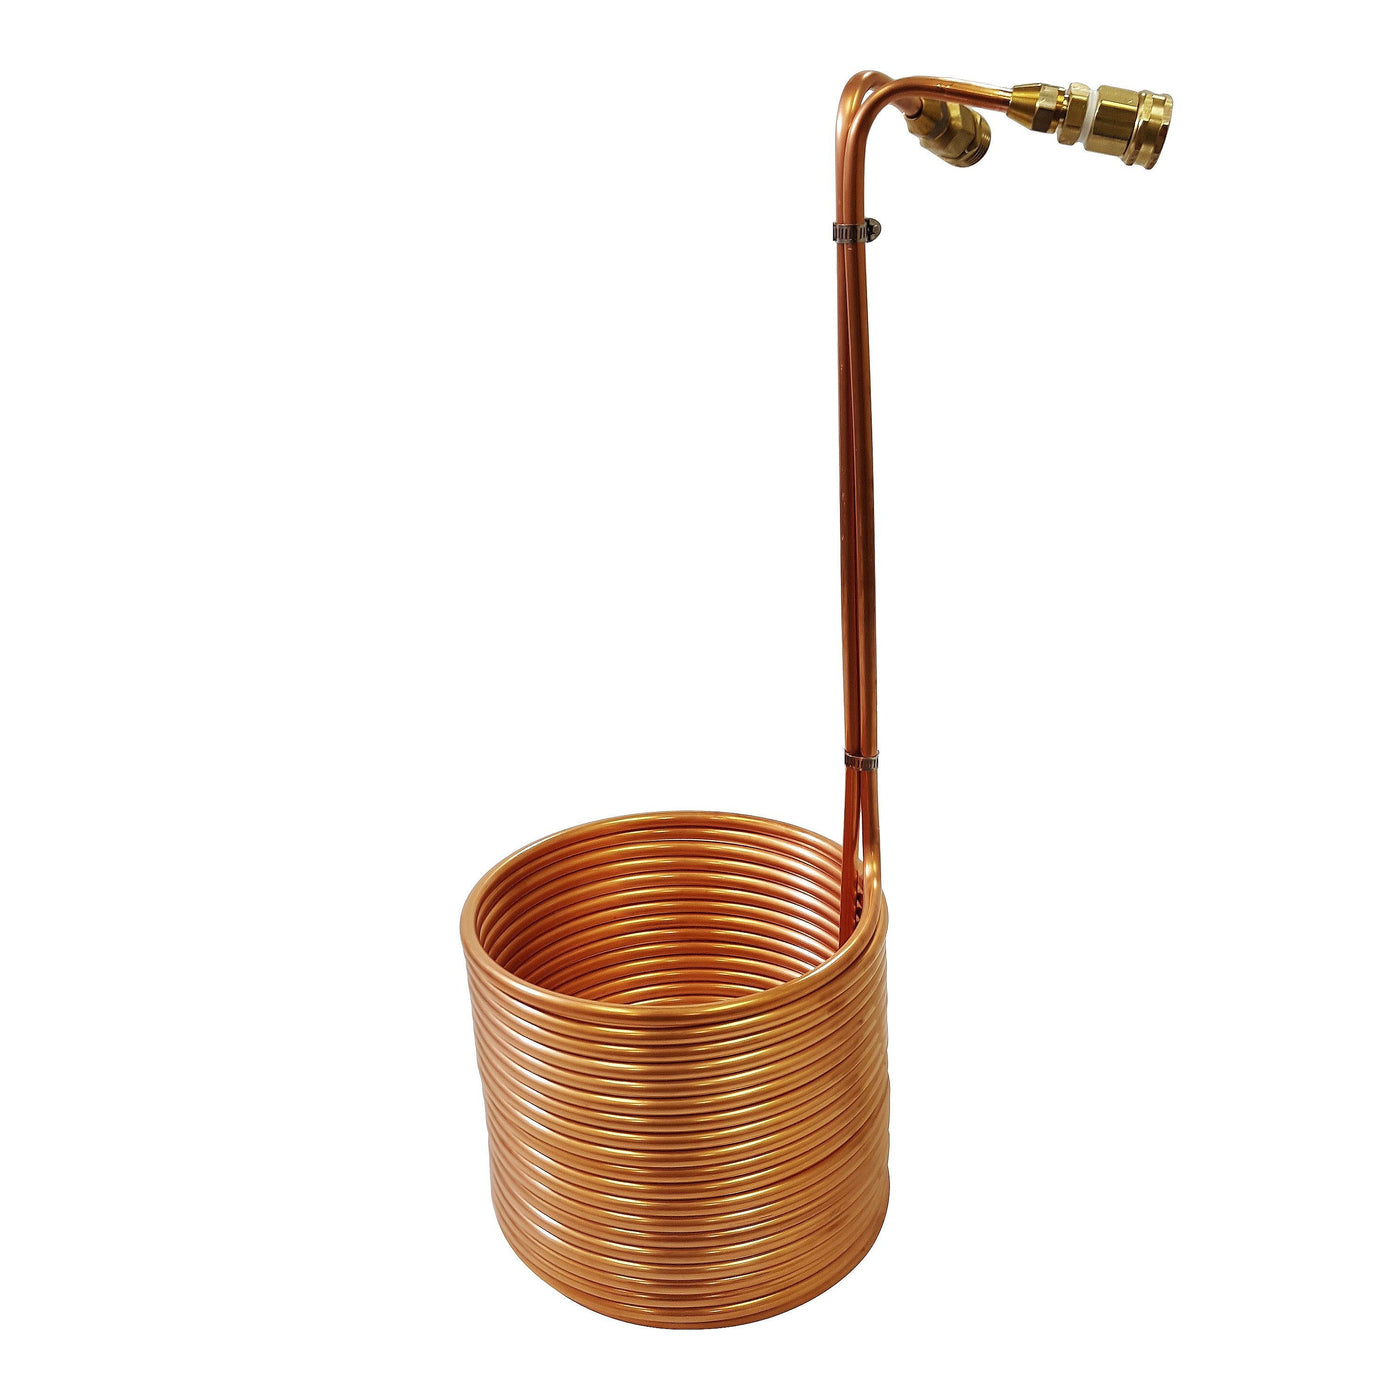 Copper Immersion Wort Chiller with Garden Hose Fittings 3/8